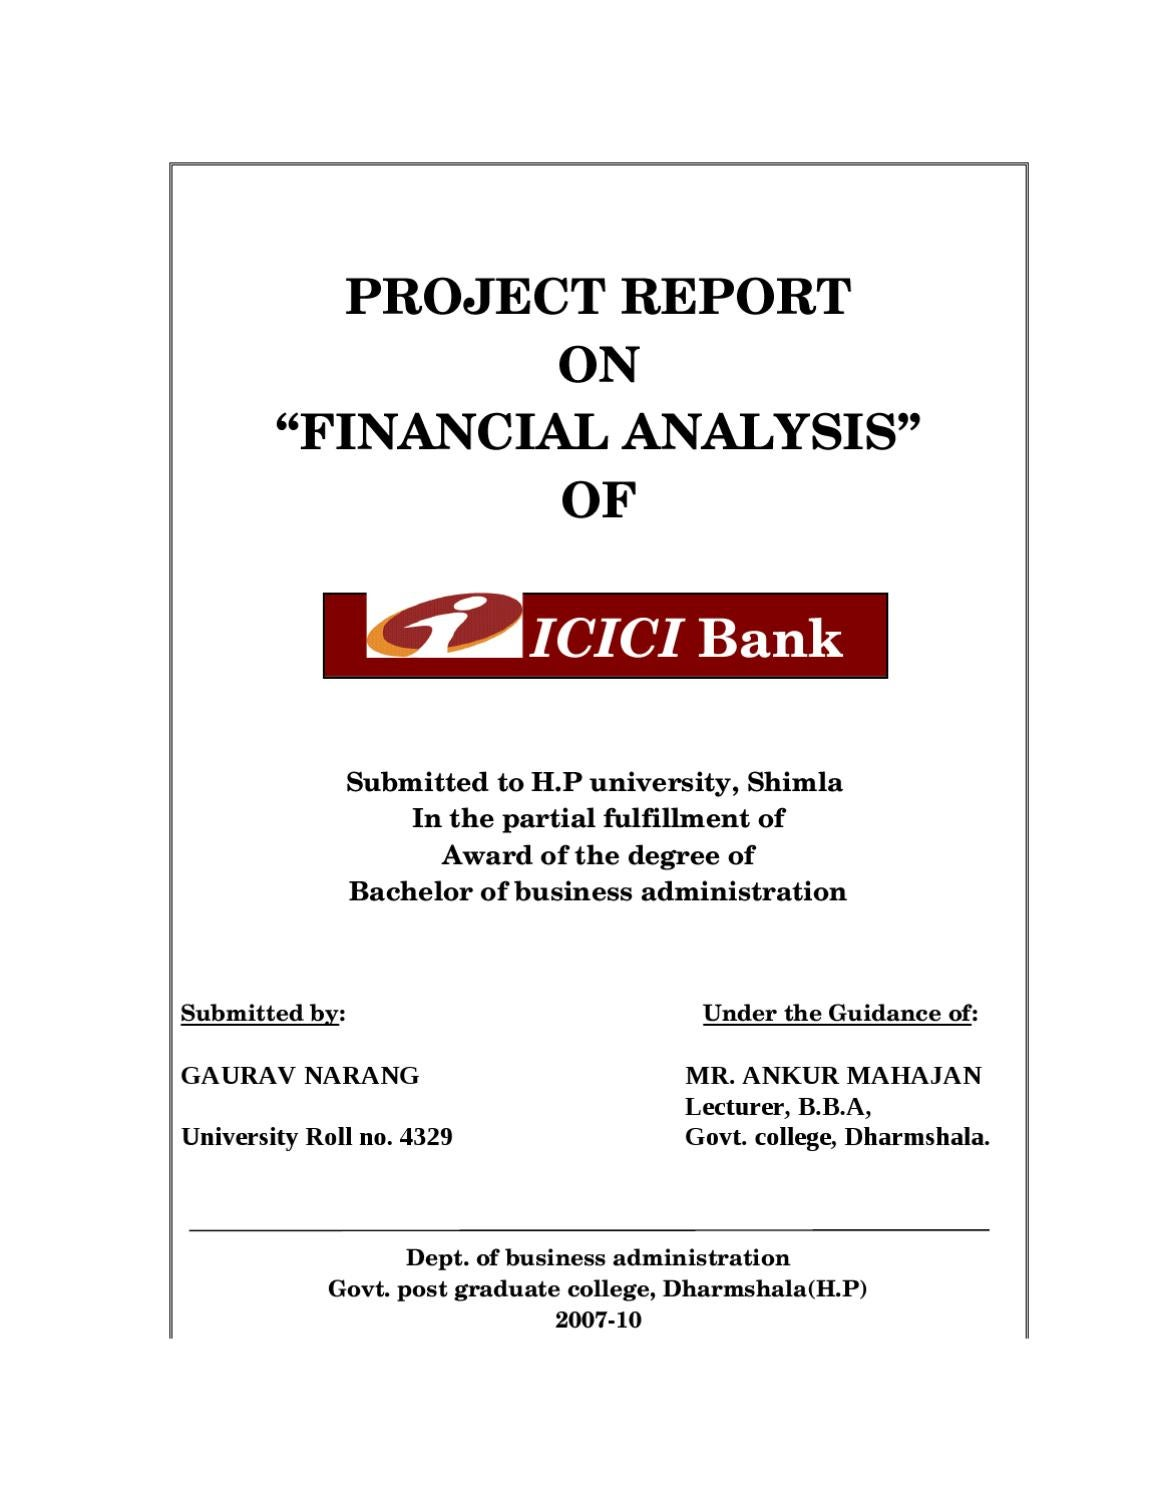 project report on financial analysis of icici bank by sanjay gupta